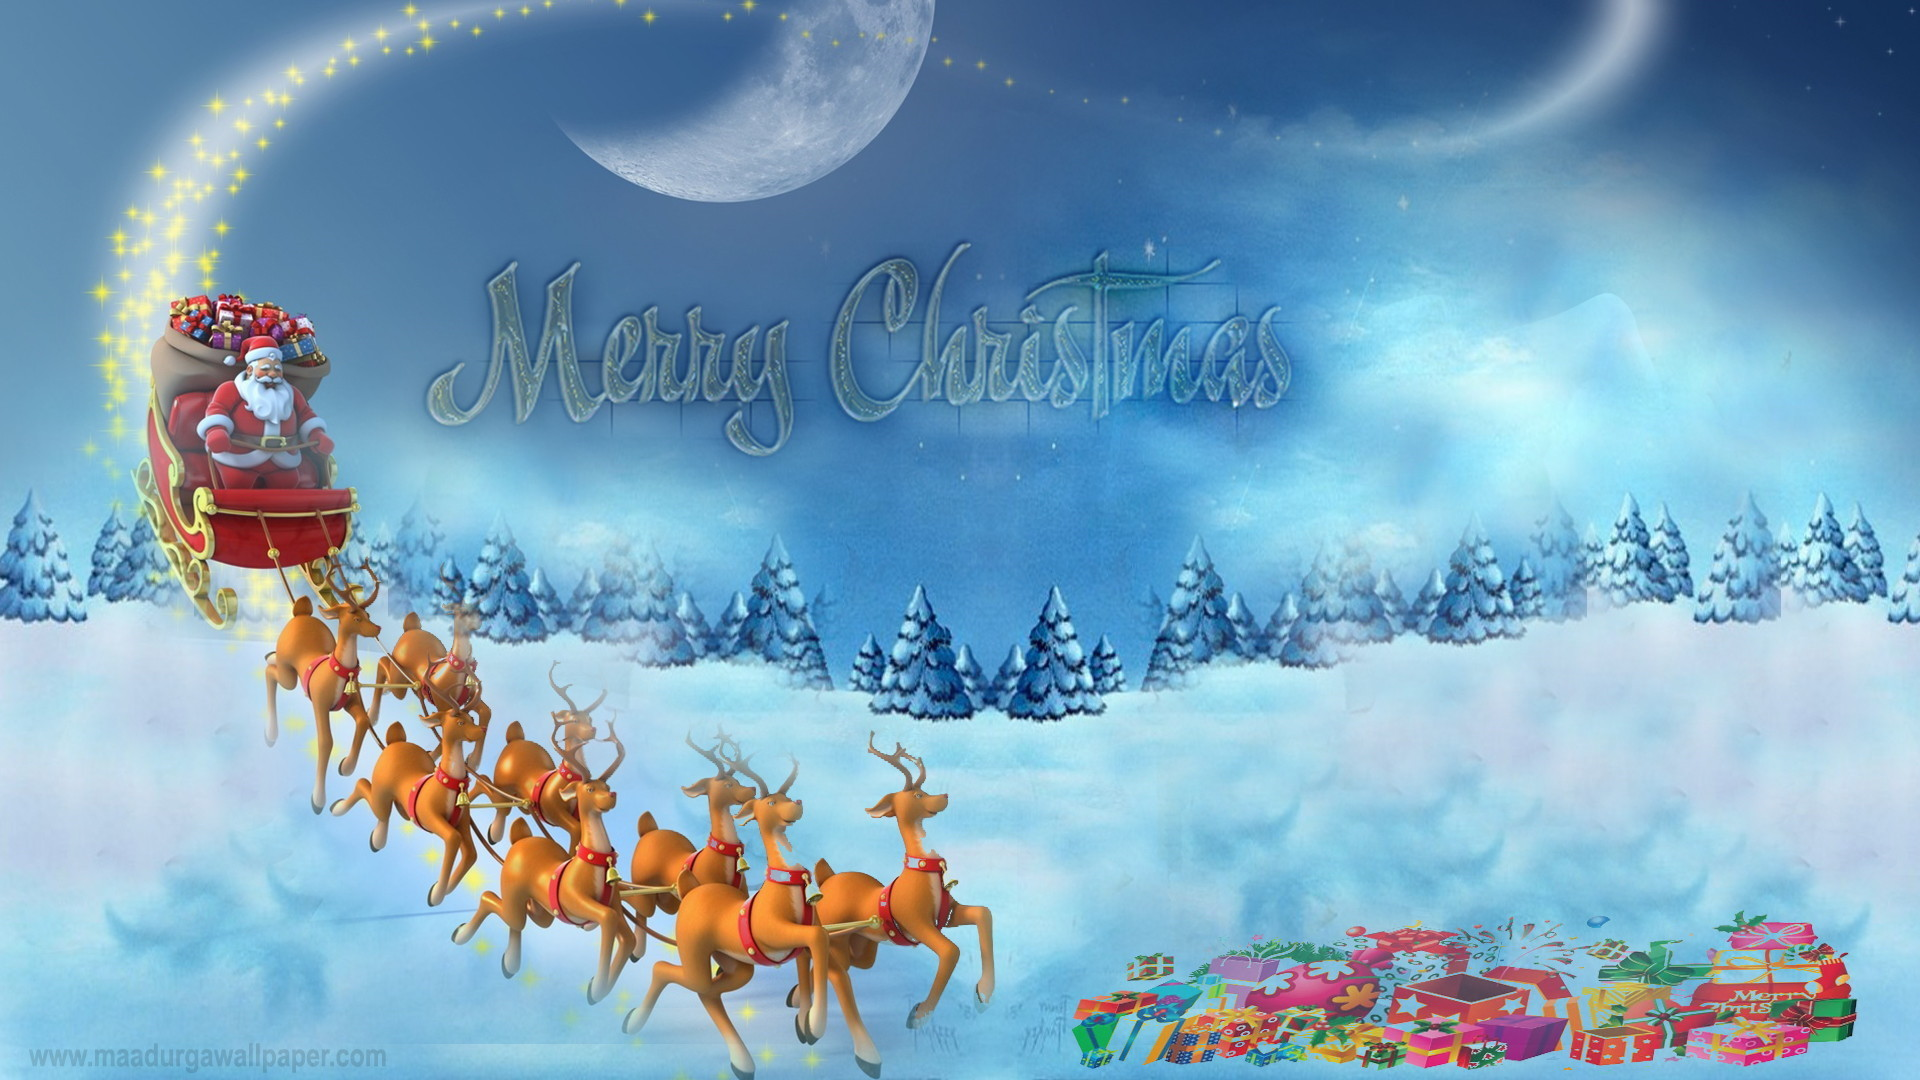 1920x1080 Christmas wallpapers free, beautiful pictures & hd images download free for  tablet, laptop &